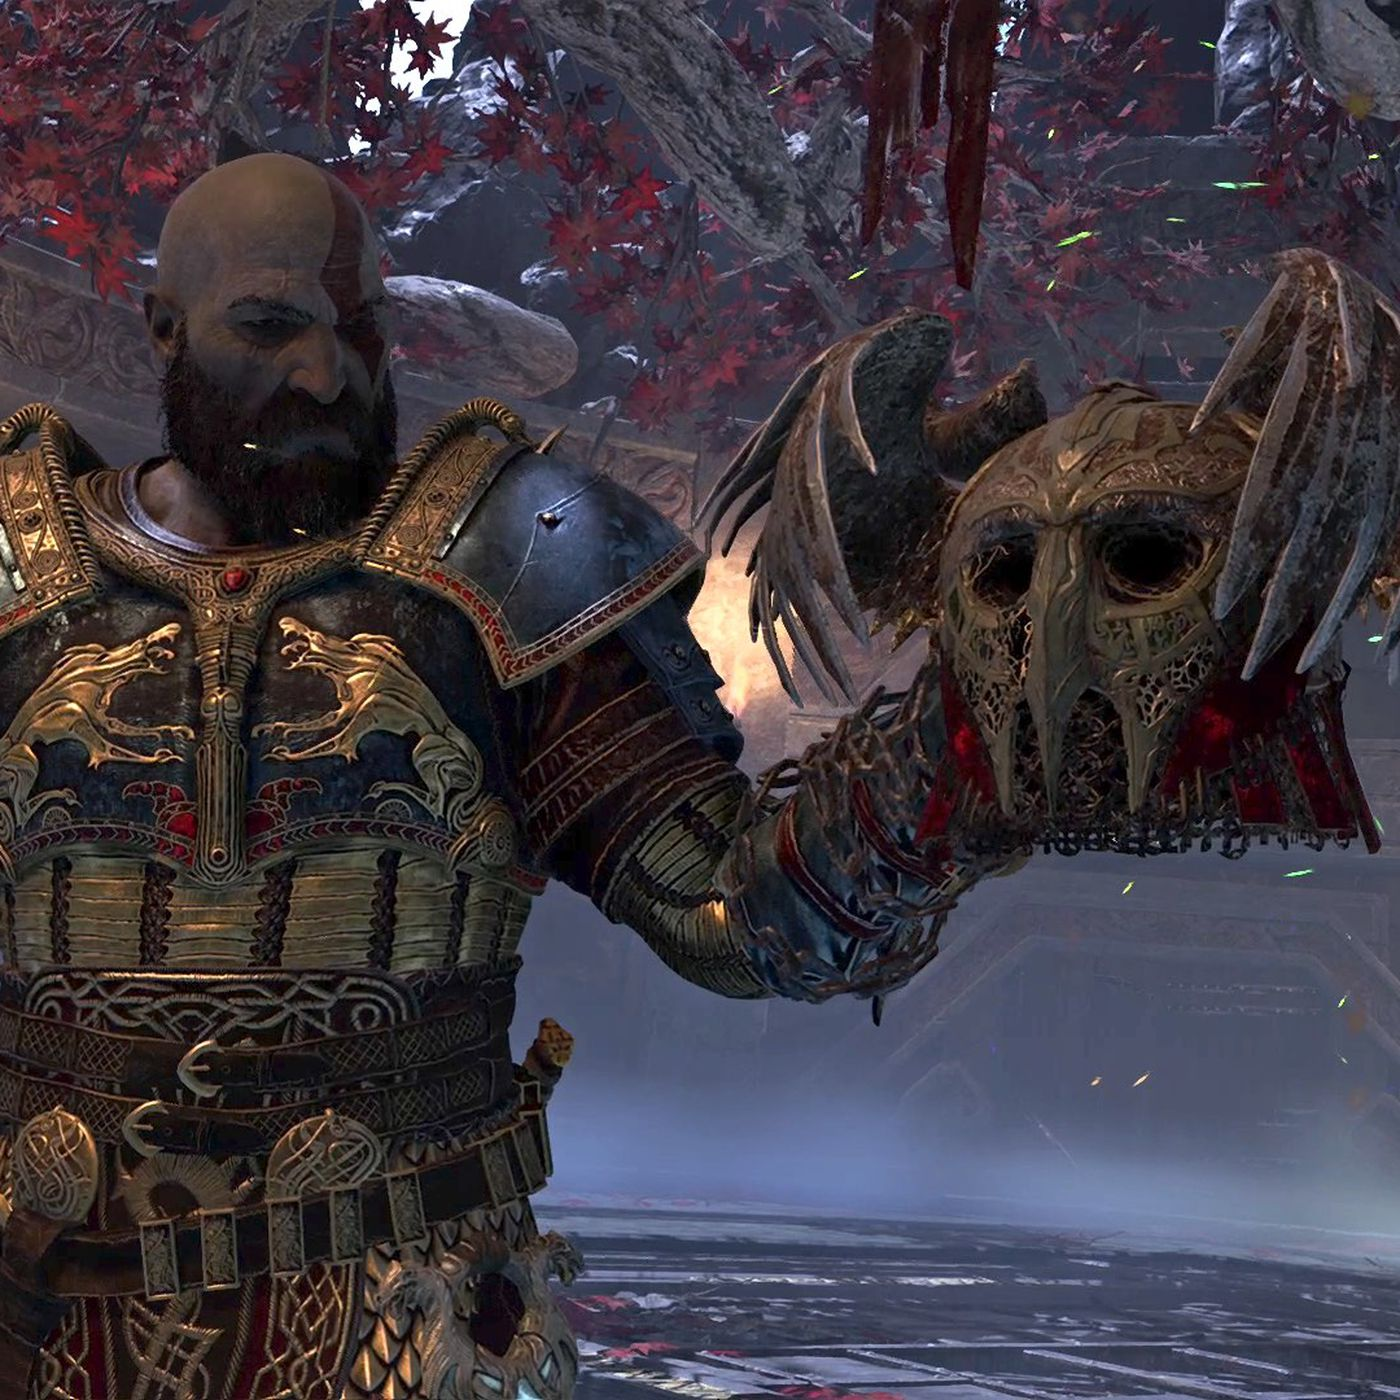 God of War Valkyrie guide: How to beat Geirdriful in the